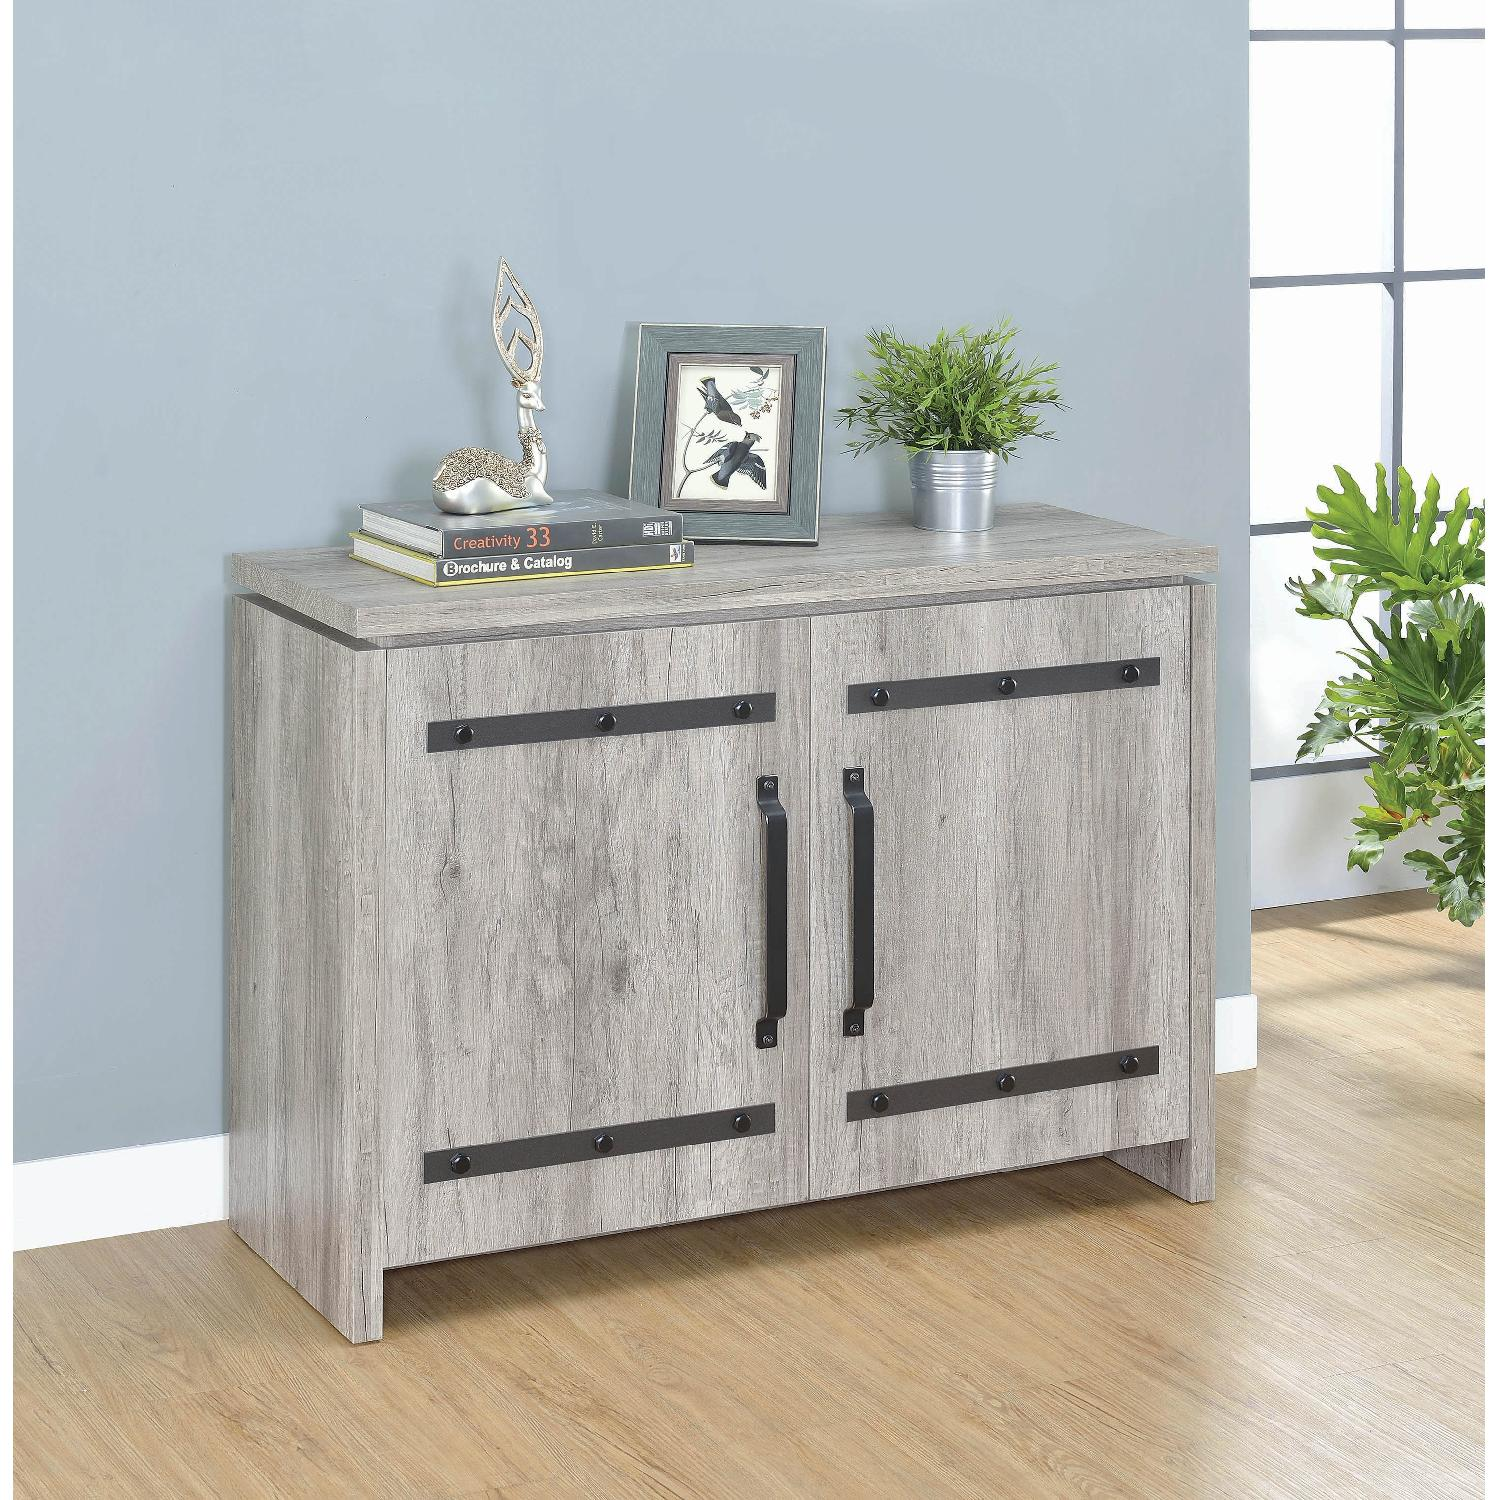 Storage Cabinet w/ Black Metal Accent - image-3